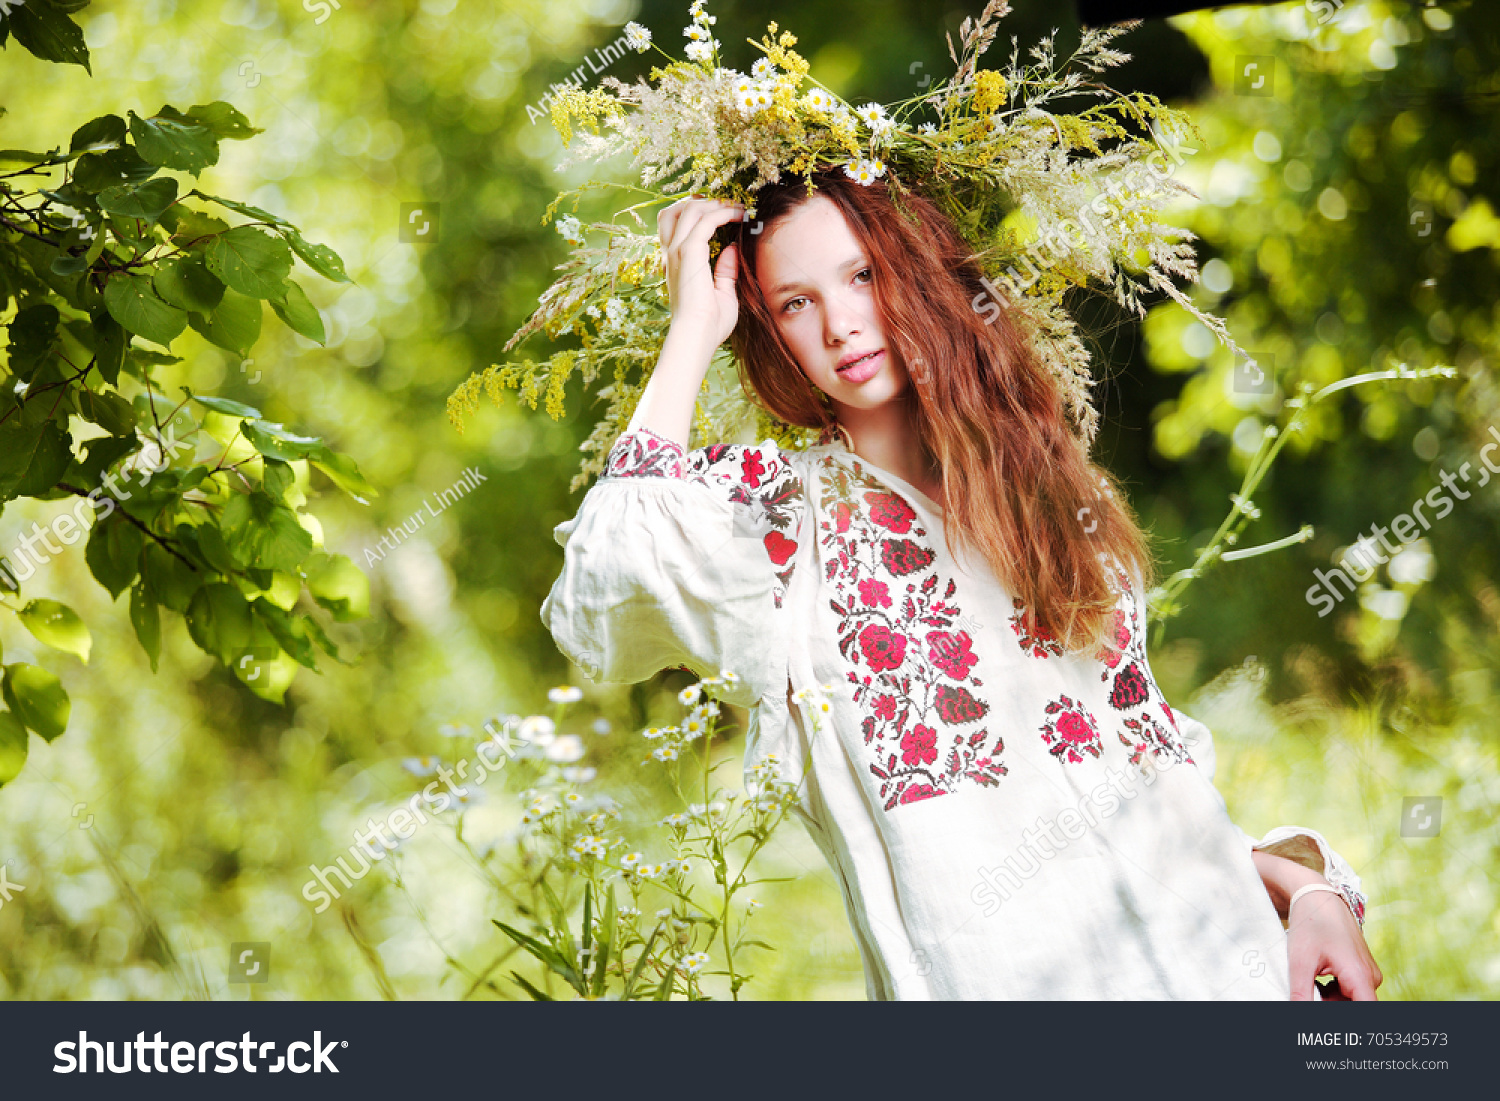 Beautiful lady forest collects flowers wreath stock photo royalty a beautiful lady in the forest collects flowers for a wreath in a traditional dress izmirmasajfo Image collections